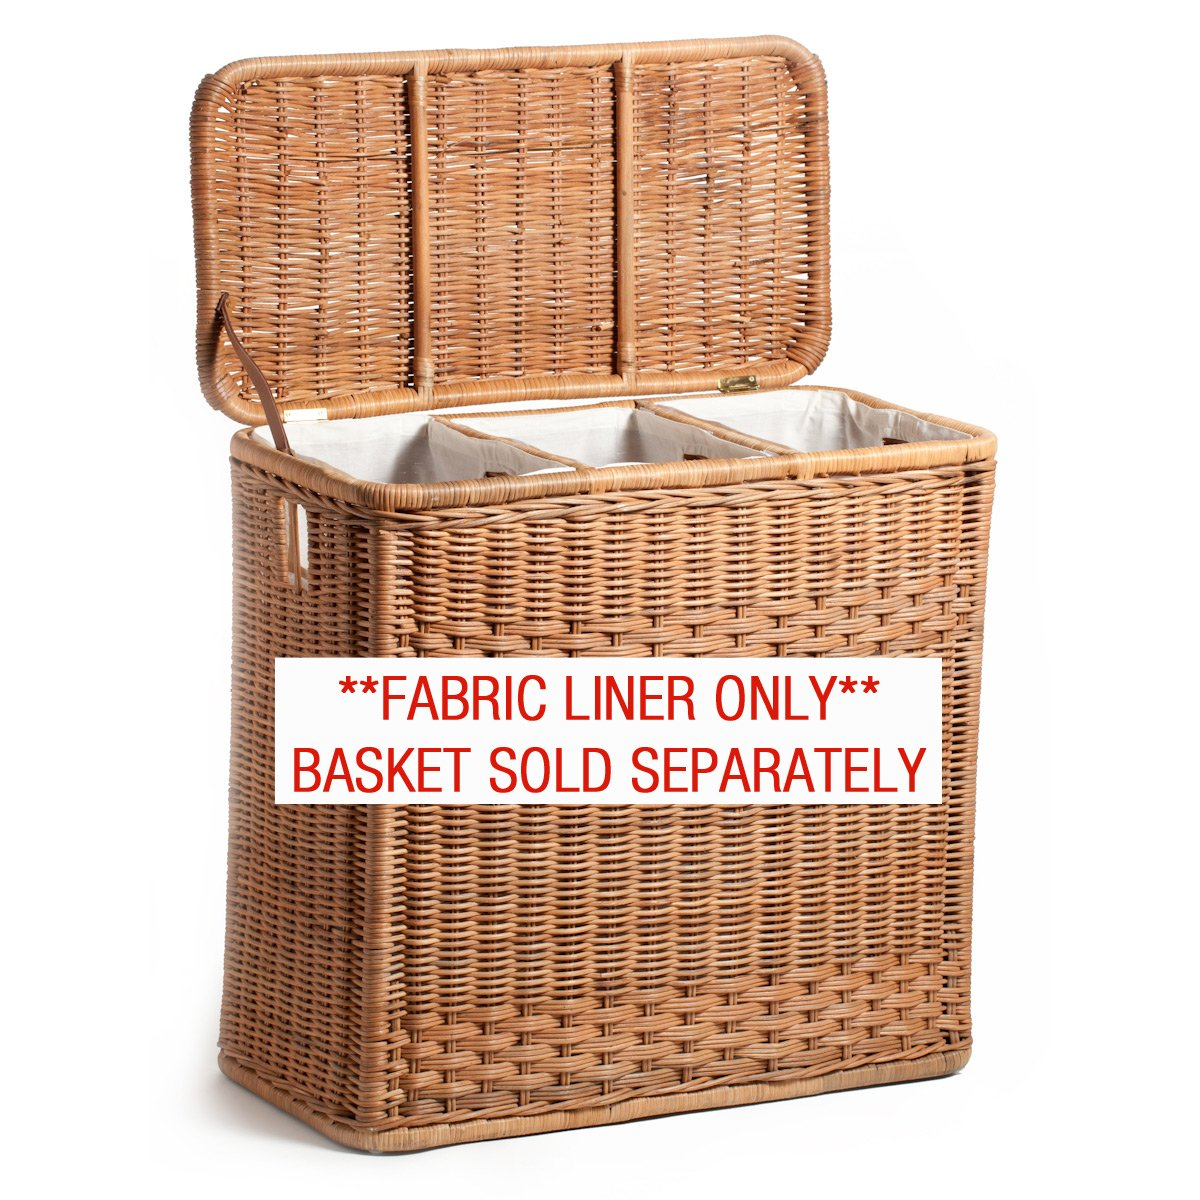 The Basket Lady Fabric Liner for 3-Compartment Wicker Laundry Hamper (LINER ONLY), One Section, Natural by The Basket Lady (Image #1)